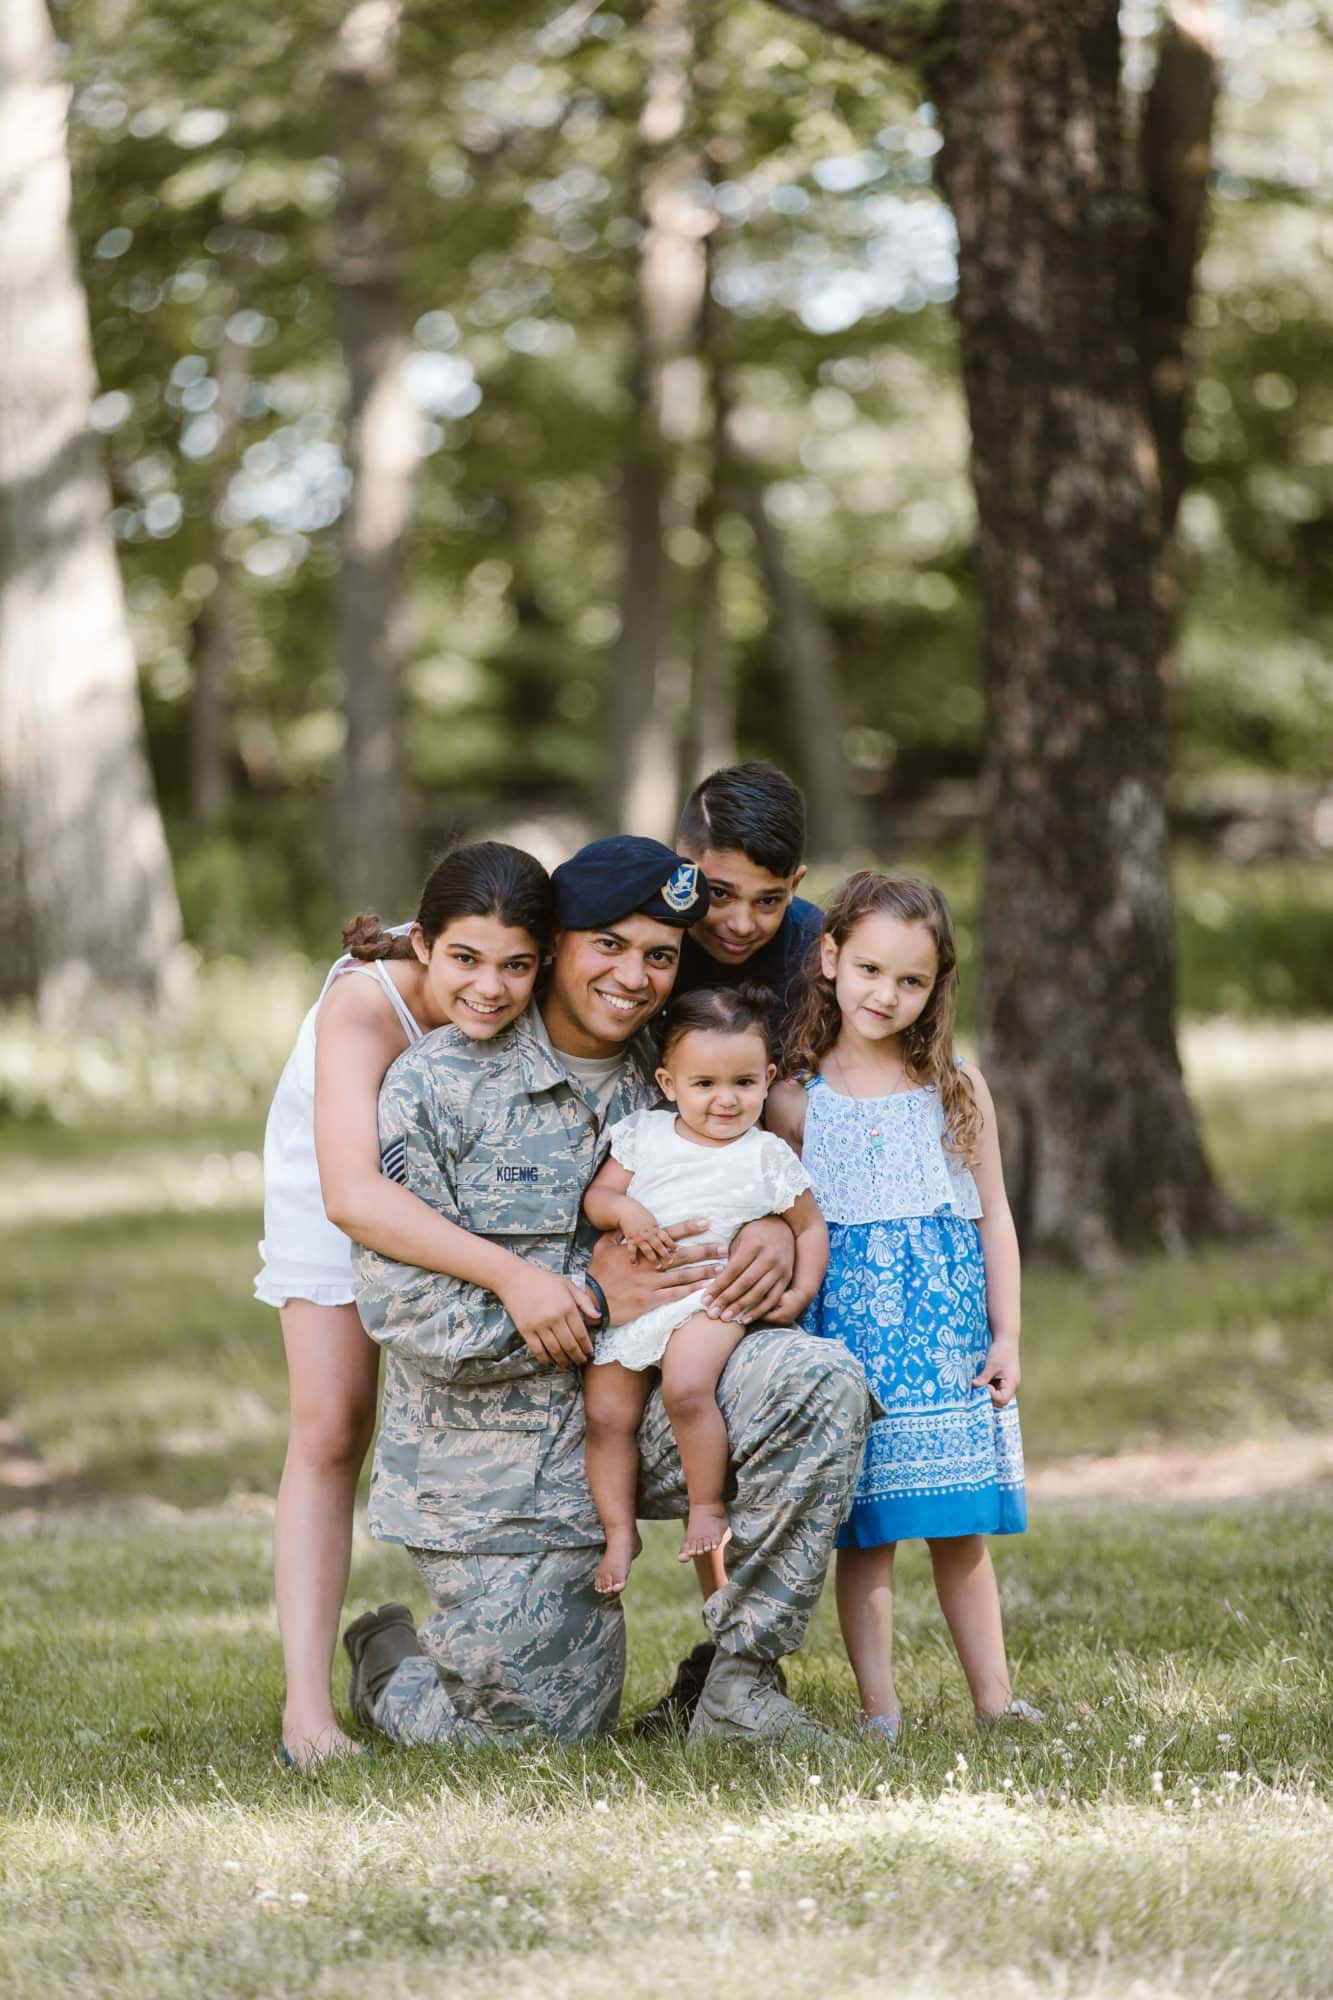 Outdoor family portraits during public safety event to thank those who serve our country photographed by Massart Photography Rhode Island